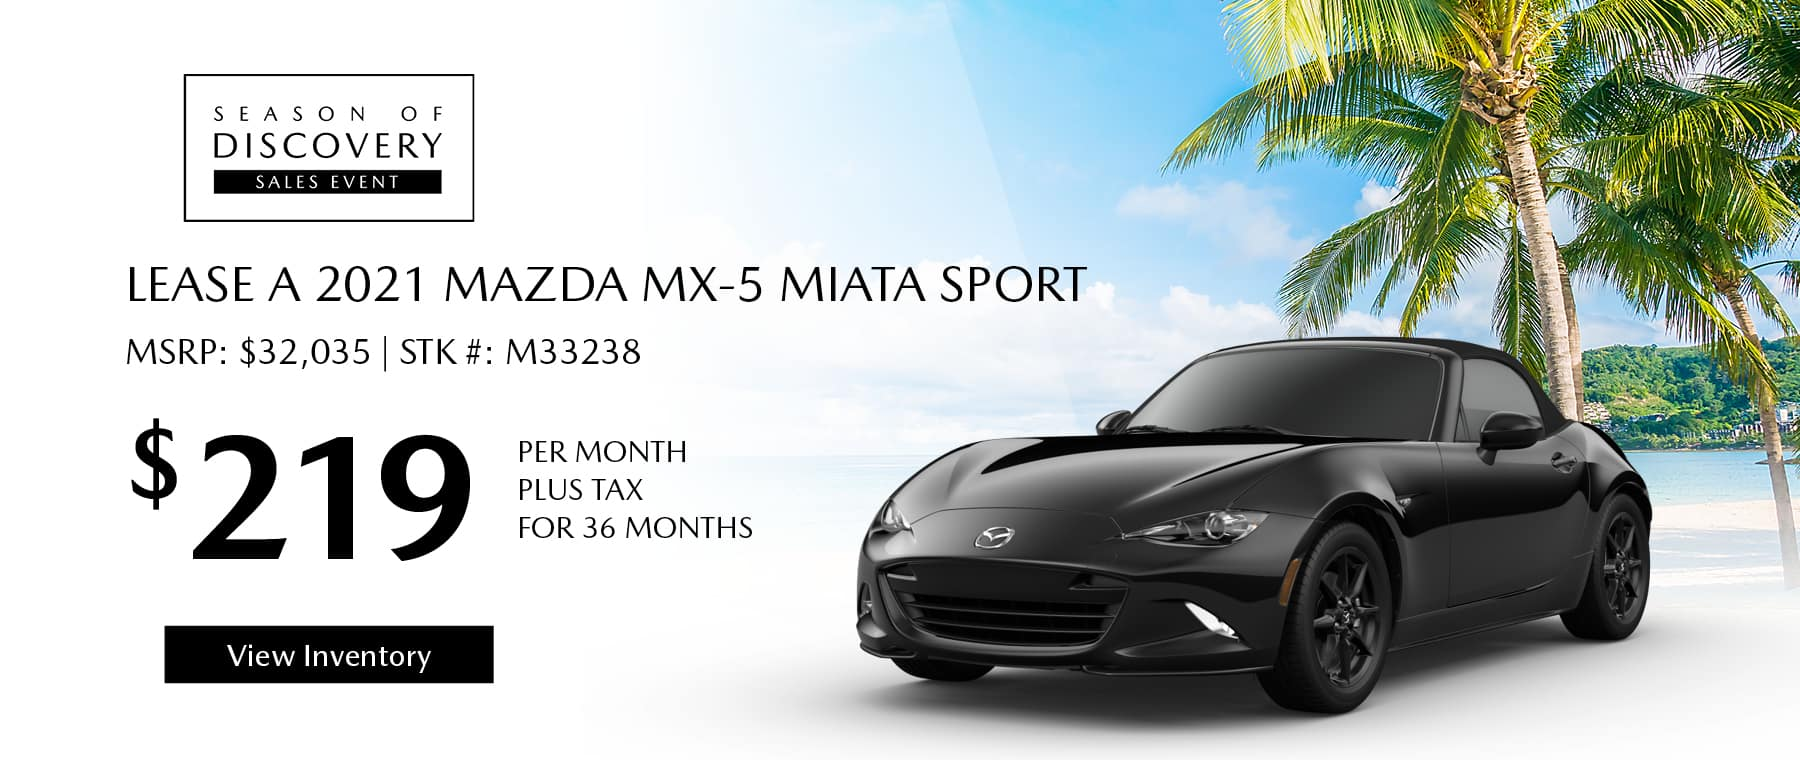 Lease the 2021 Mazda MX-5 Miata Sport for $219 per month, plus tax for 36 months. Click or tap here to view our inventory.